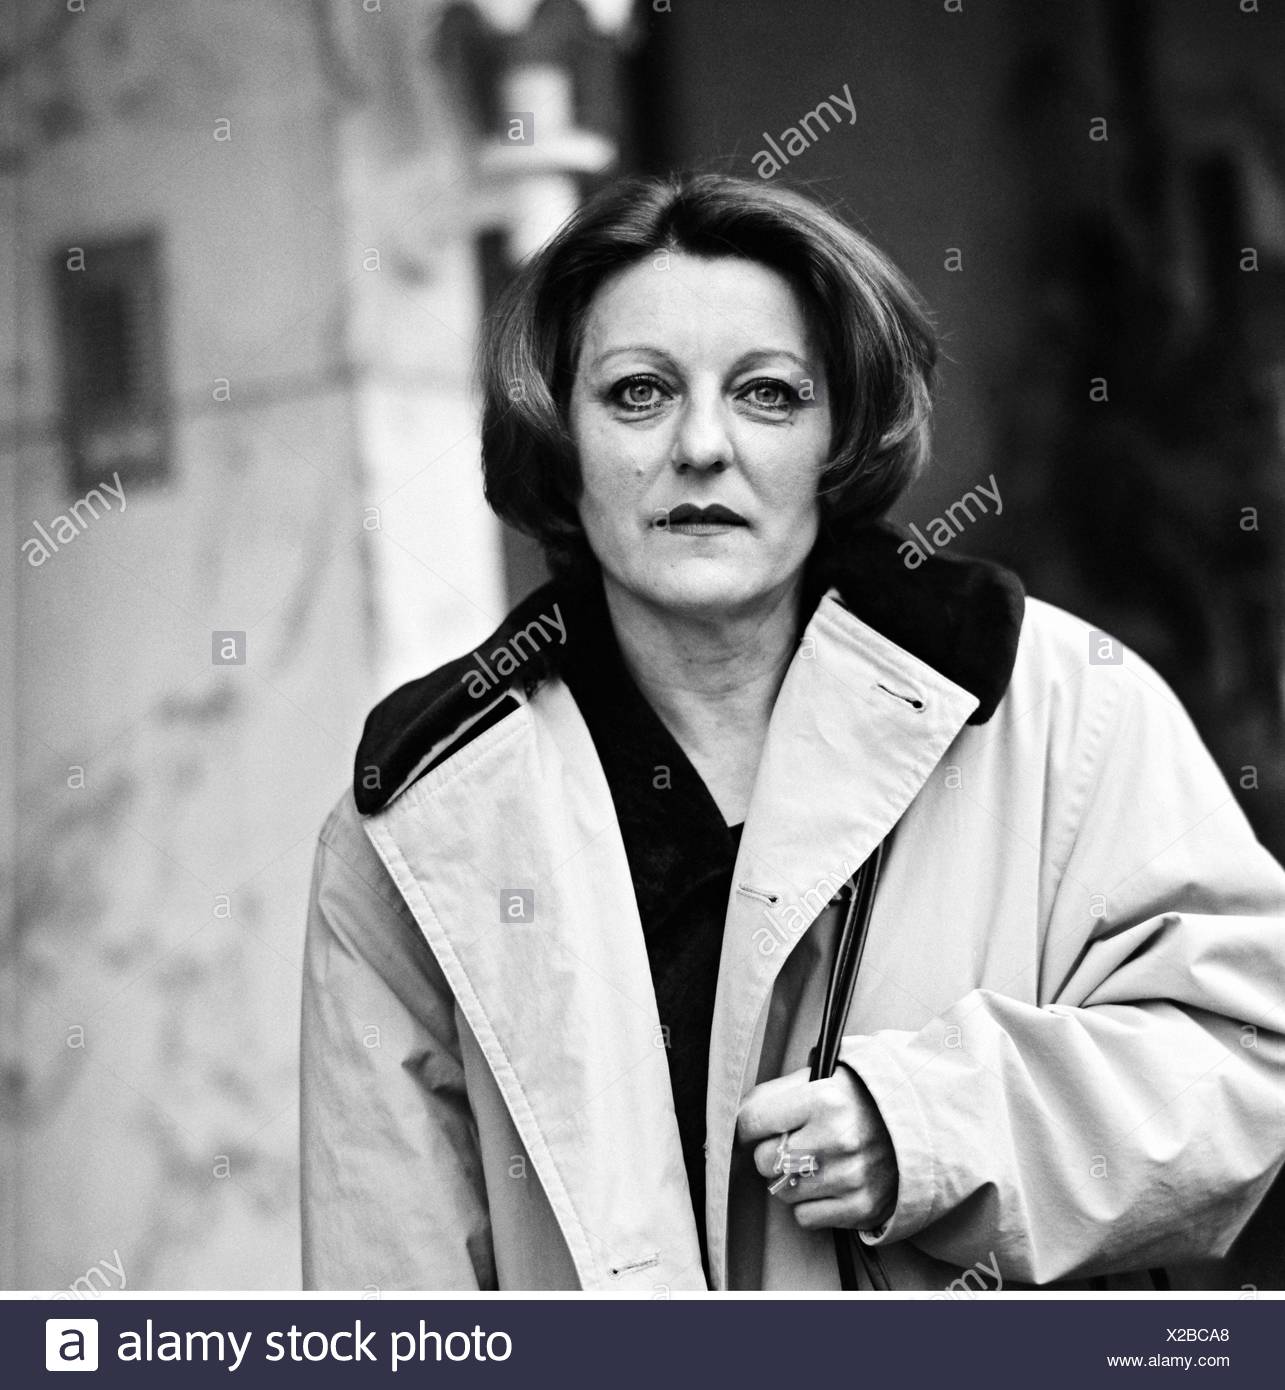 Mueller, Herta, * 17.8.1953, German author / writer, portrait, 12.11.1998, Additional-Rights-Clearances-NA - Stock Image